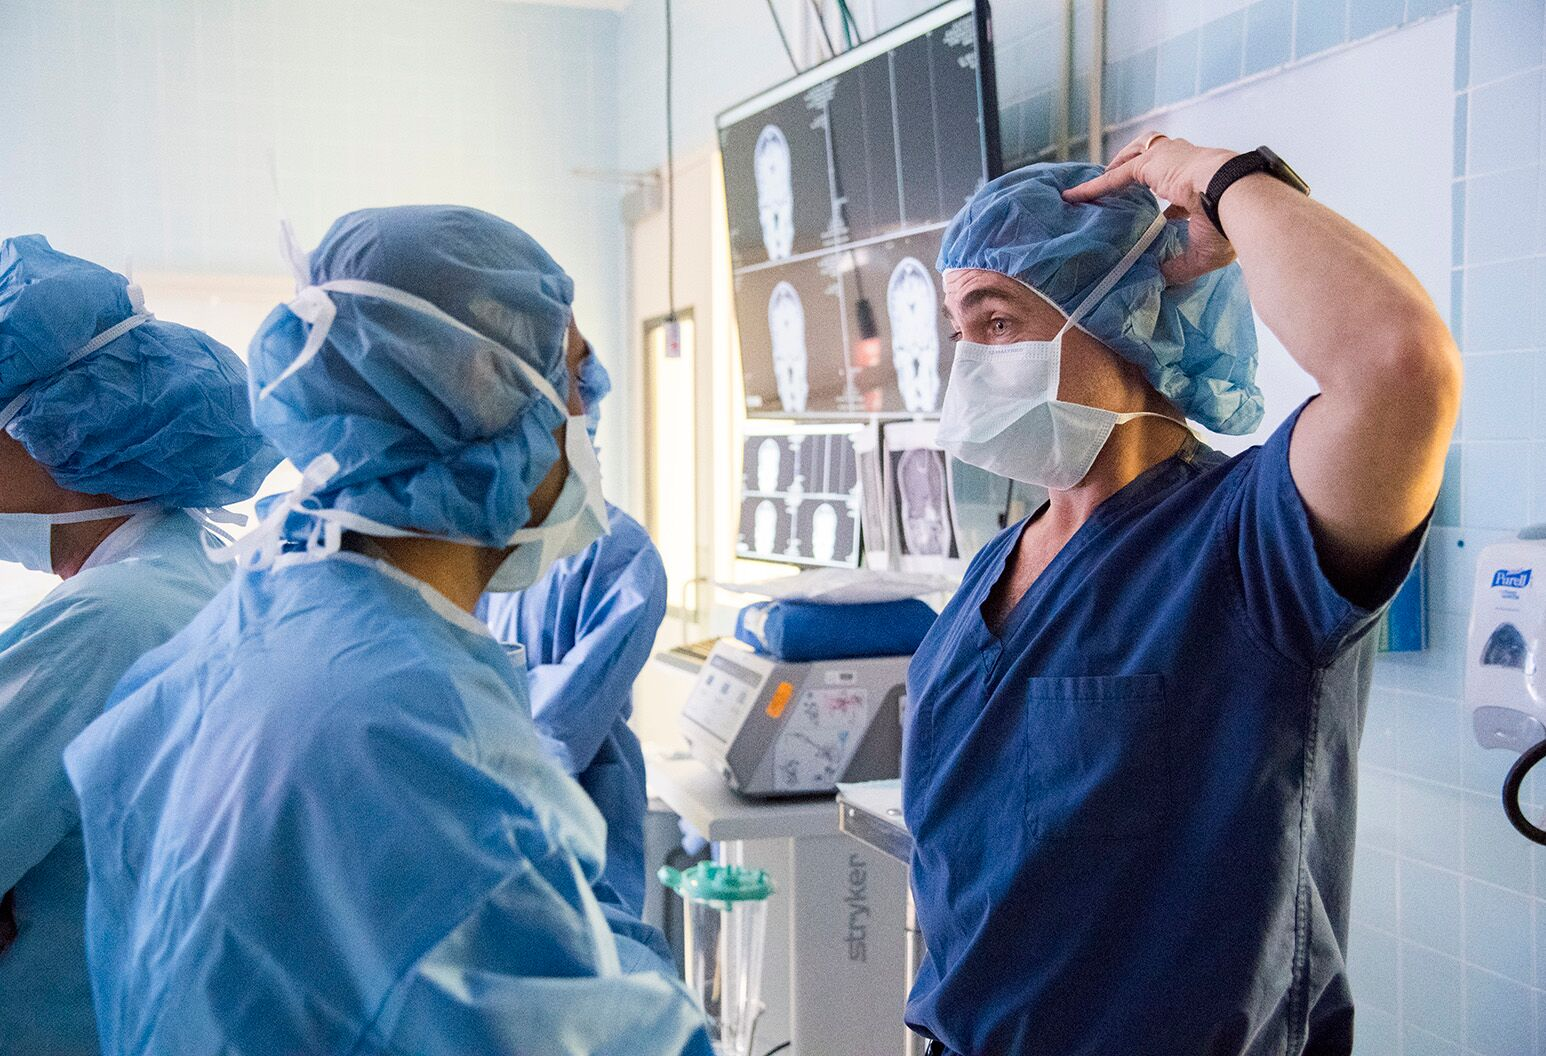 Doctors in operating room fixing scrubs.